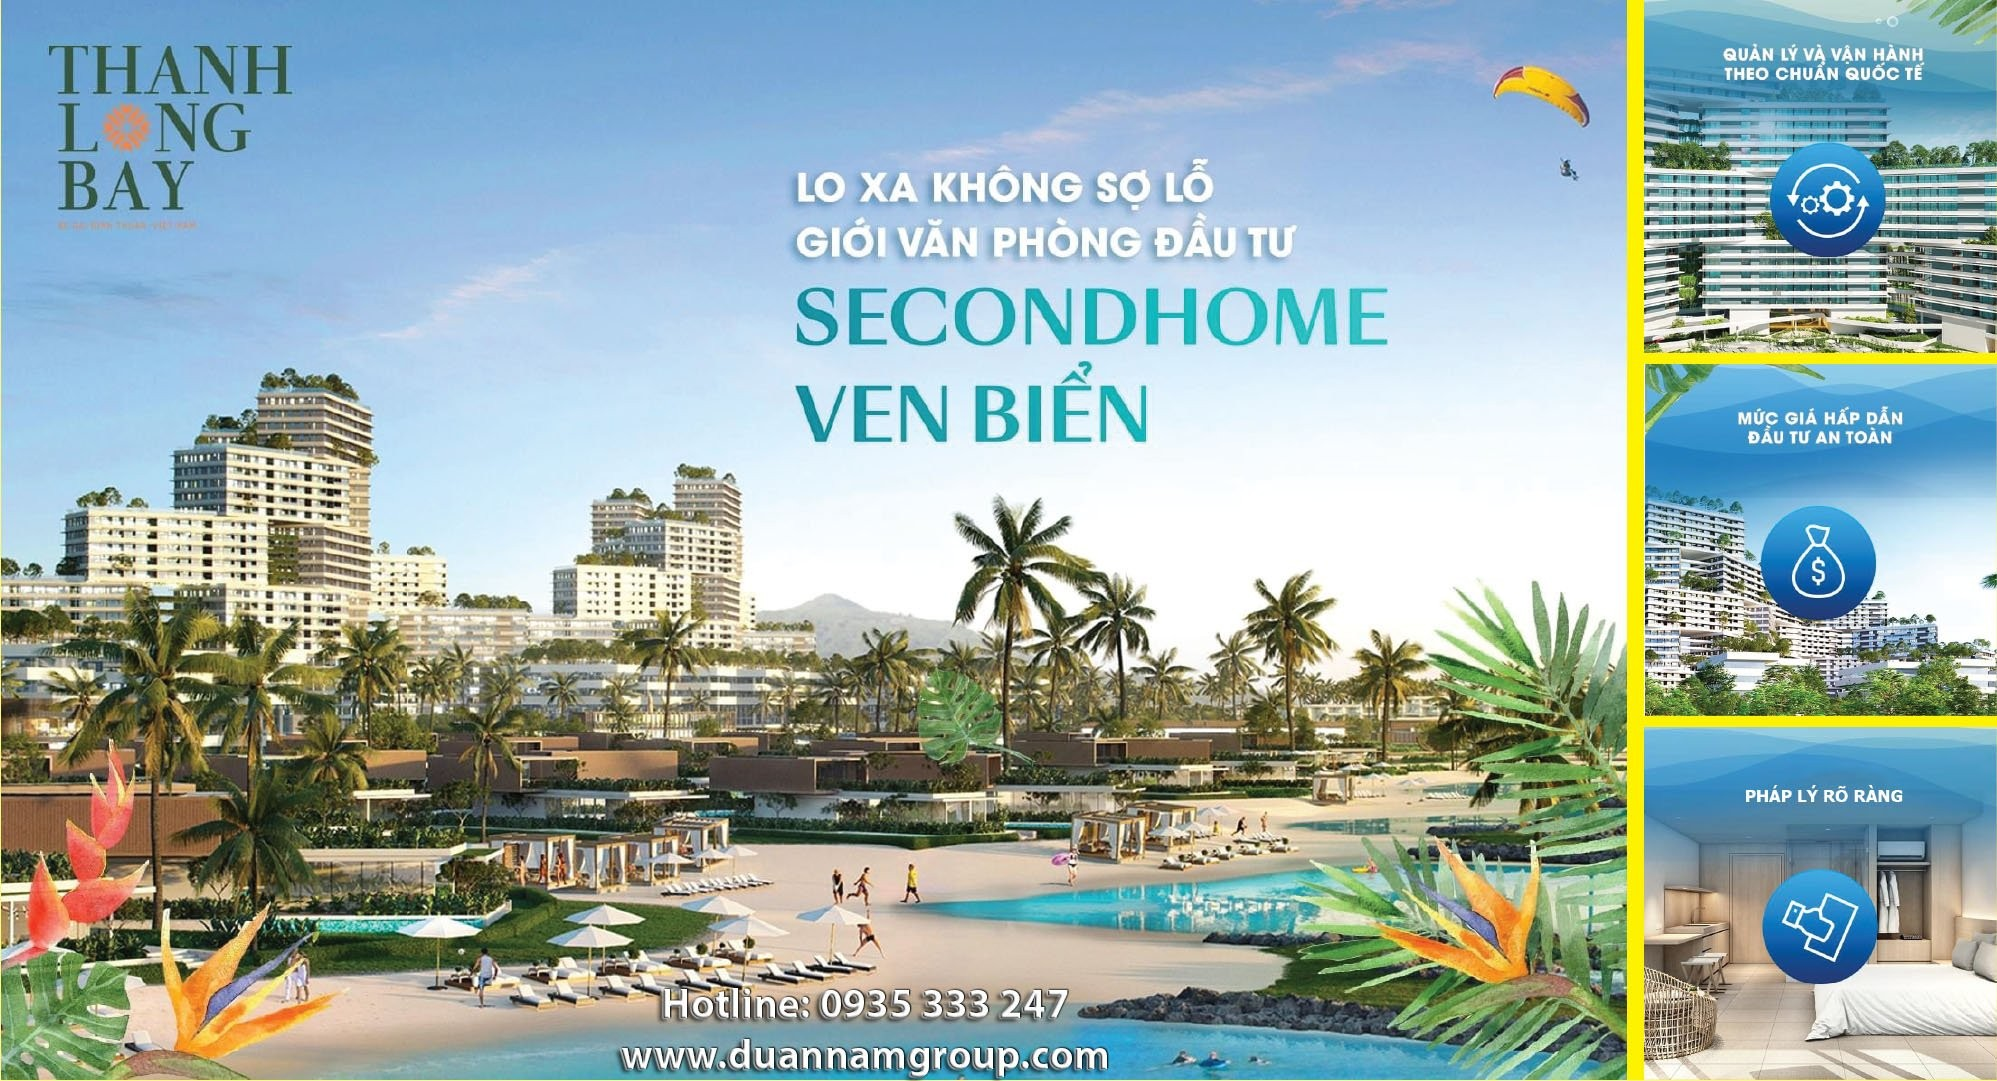 The Sound secondhome Thanh Long bay